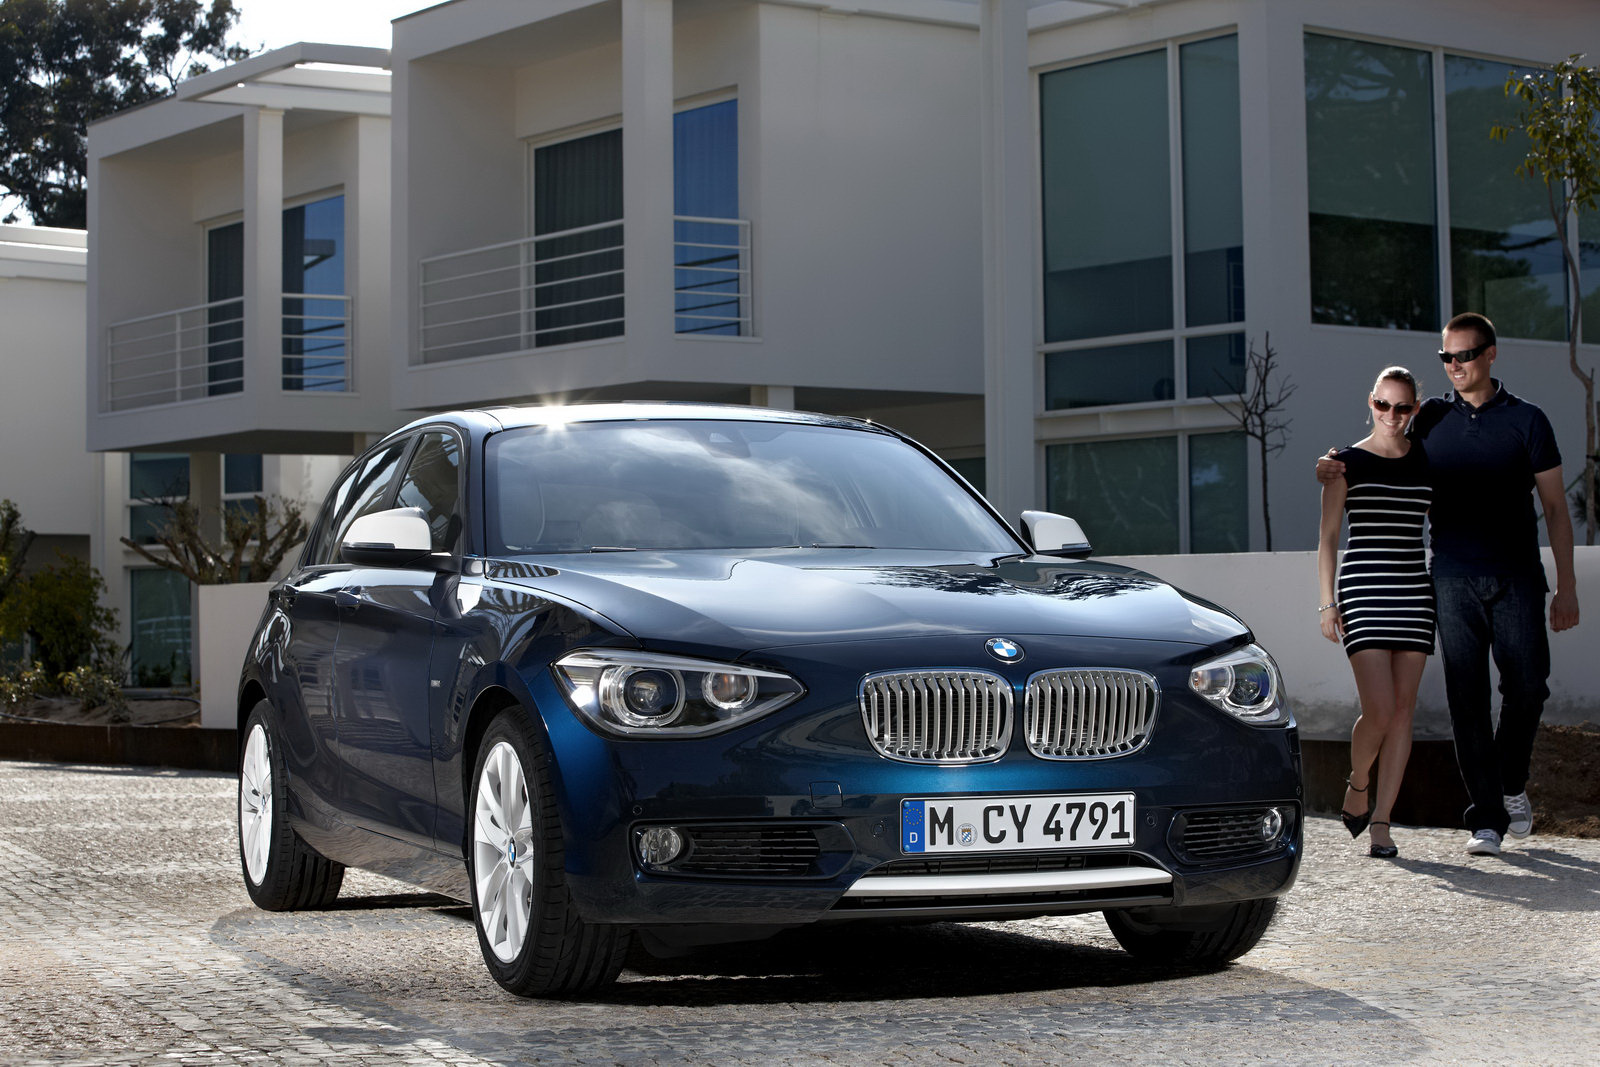 BMW 1 Series 2011 Car Wallpaper